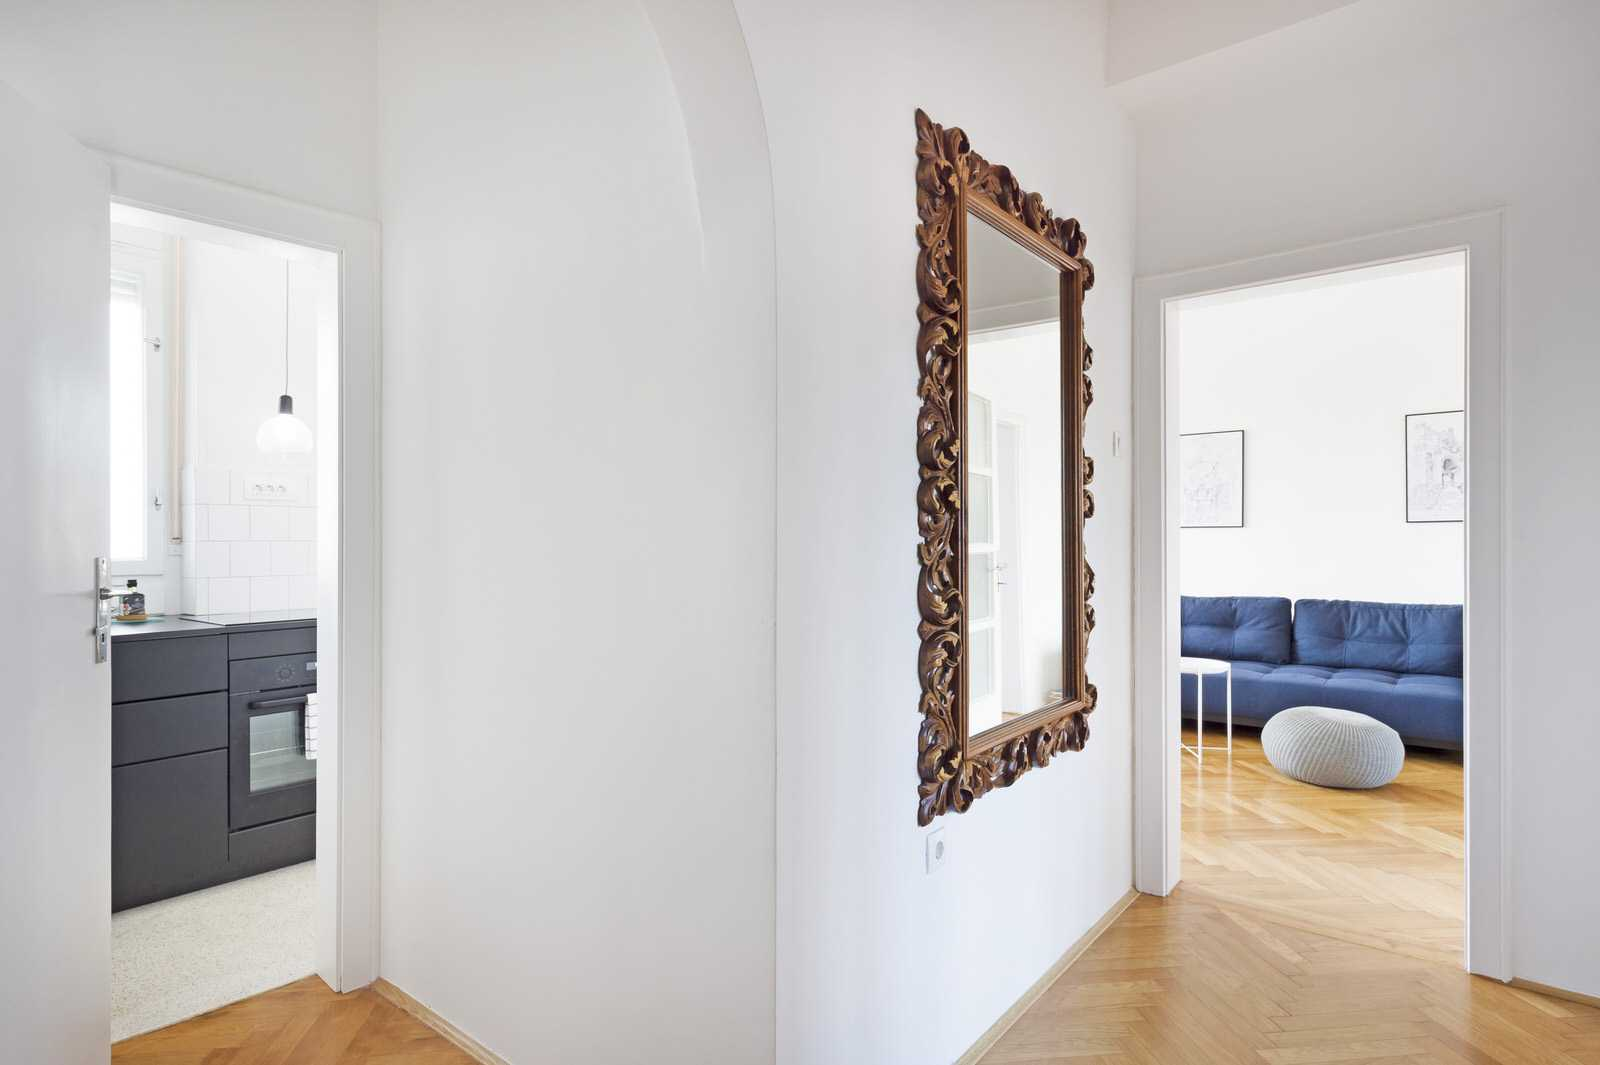 Apartment hallway with a rustic looking mirror.